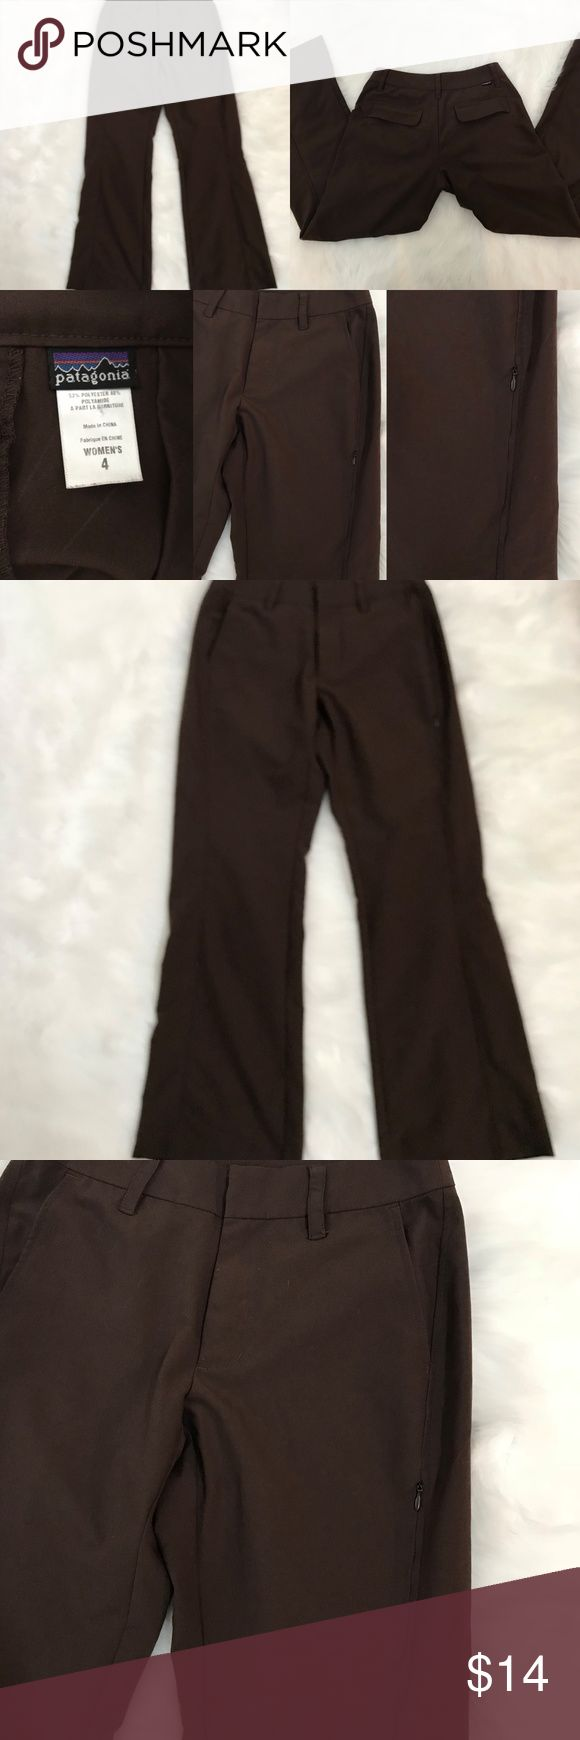 "Patagonia Womens Pants Brown sz. 4 Beautiful Brown Womens Patagonia Pants.  Comfort and size 4 Waist 28"" Rise 8.5"" Inseam 29"" Patagonia Pants"